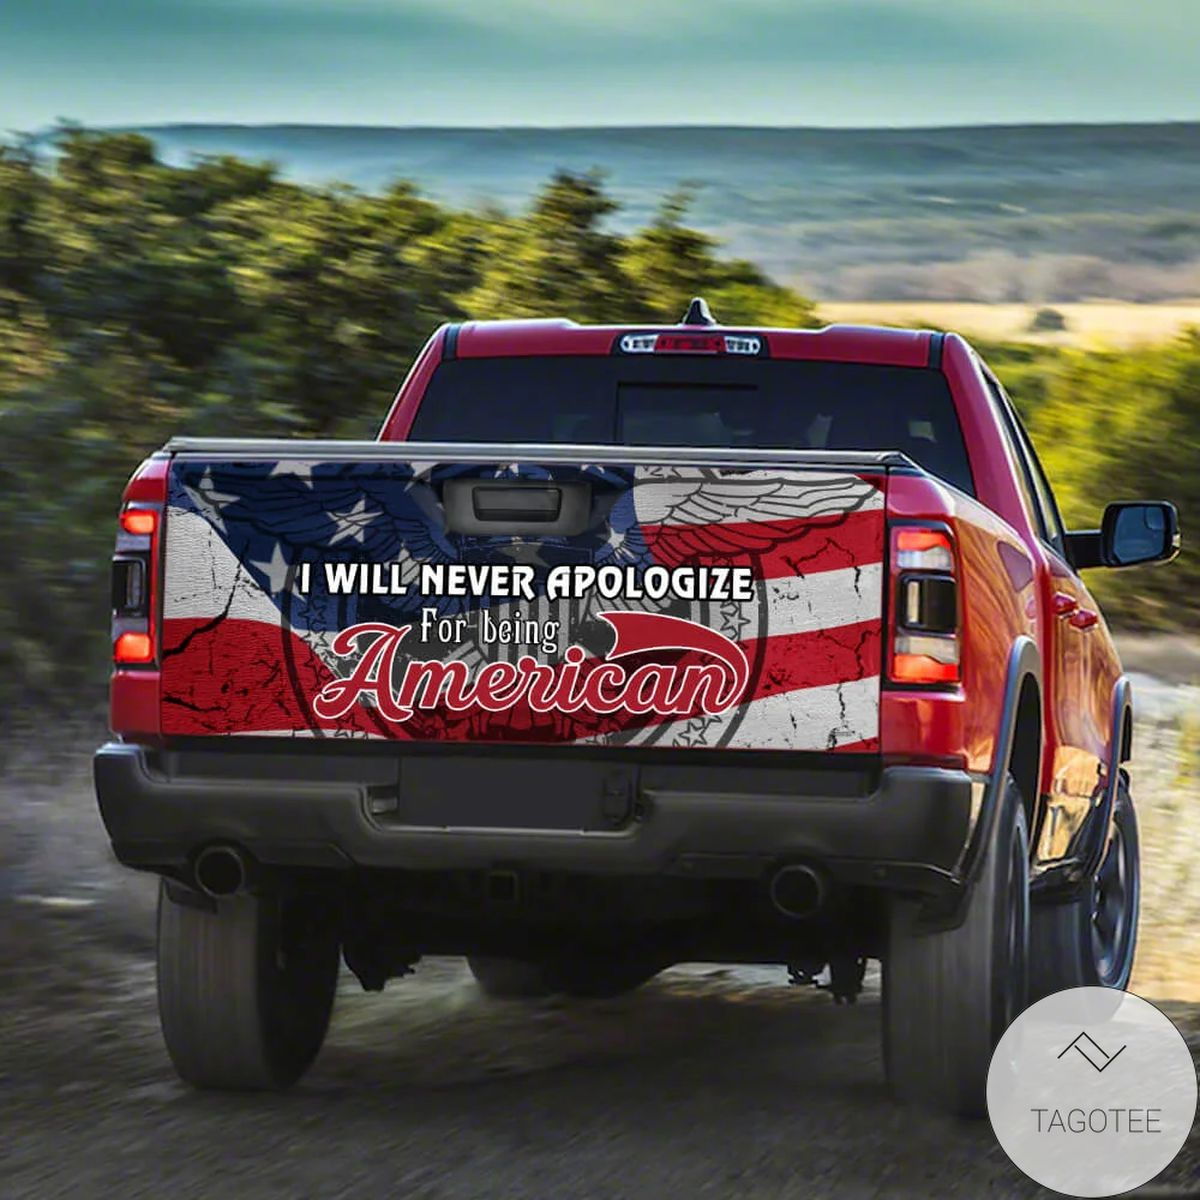 New I Will Never Apologize For Being American Truck Tailgate Decal Sticker Wrap